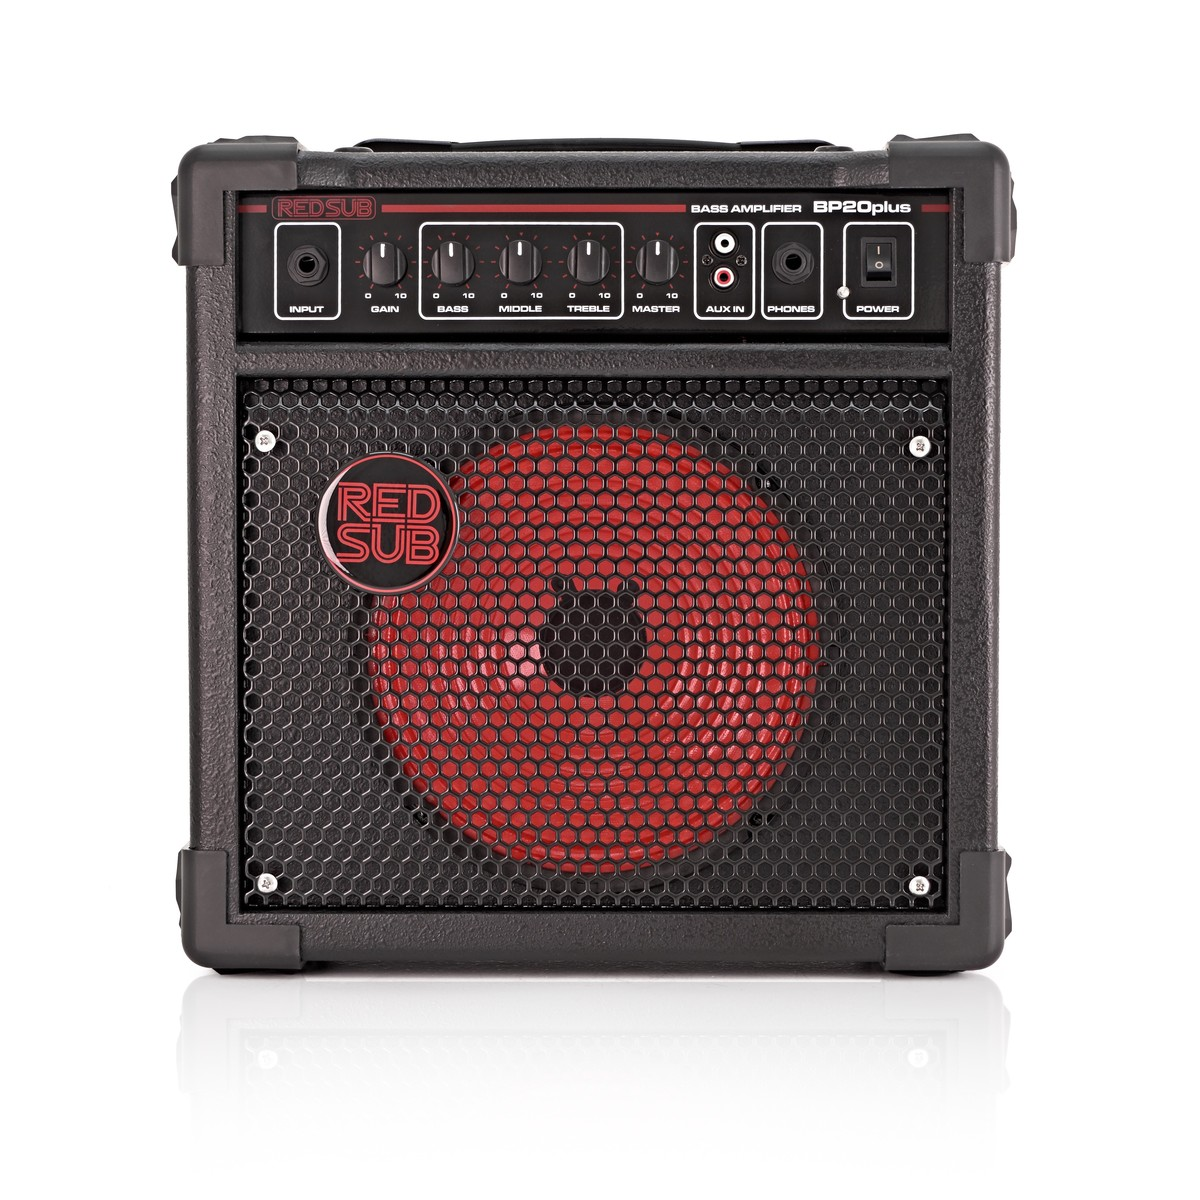 redsub bp20plus 20w bass guitar amplifier b stock at gear4music. Black Bedroom Furniture Sets. Home Design Ideas